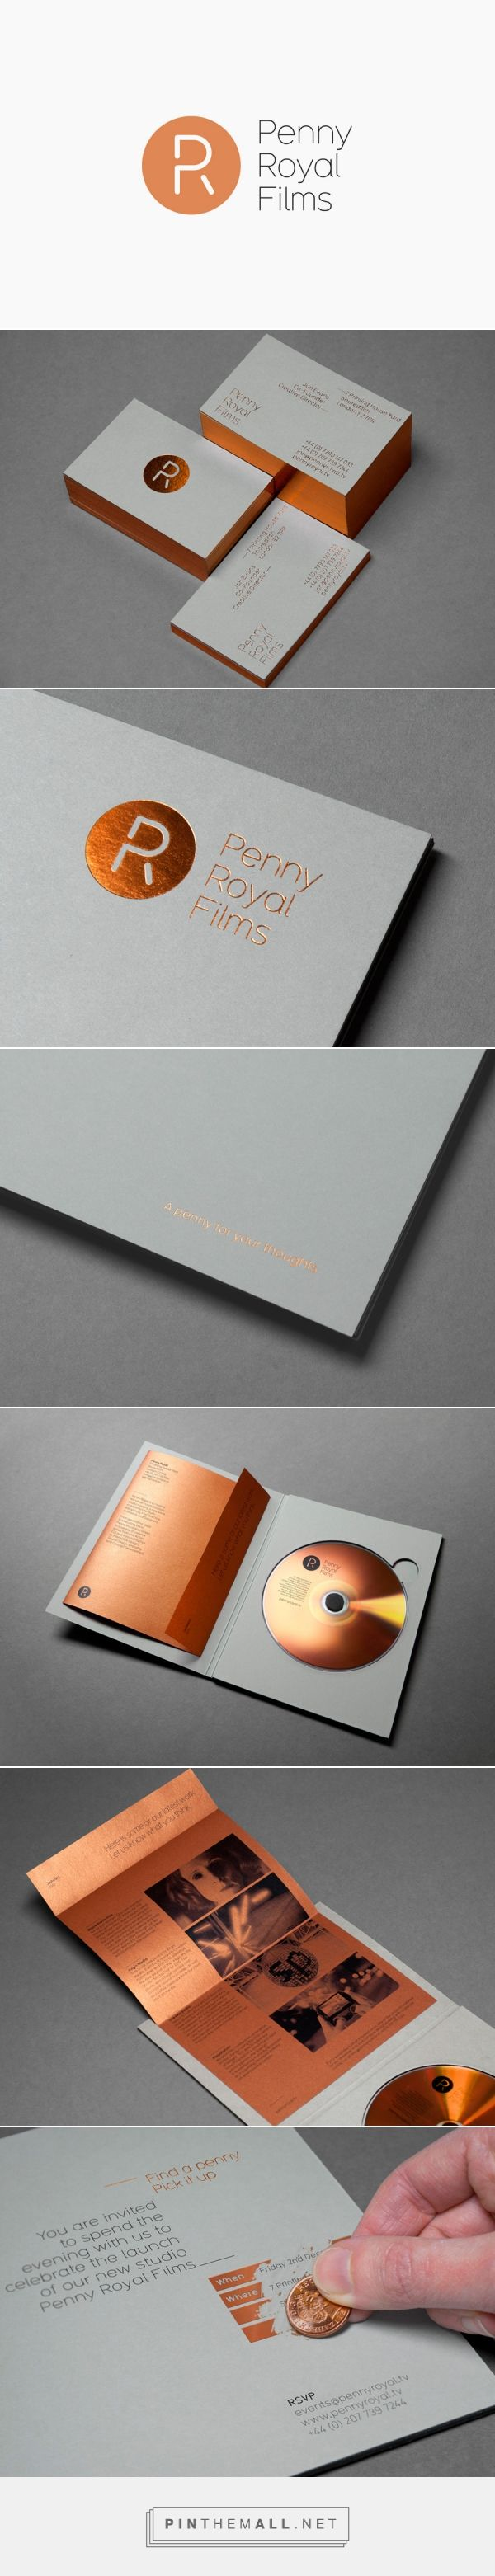 Brand Identity for Penny Royal Films by Alphabetical - BP&O - created via http://pinthemall.net